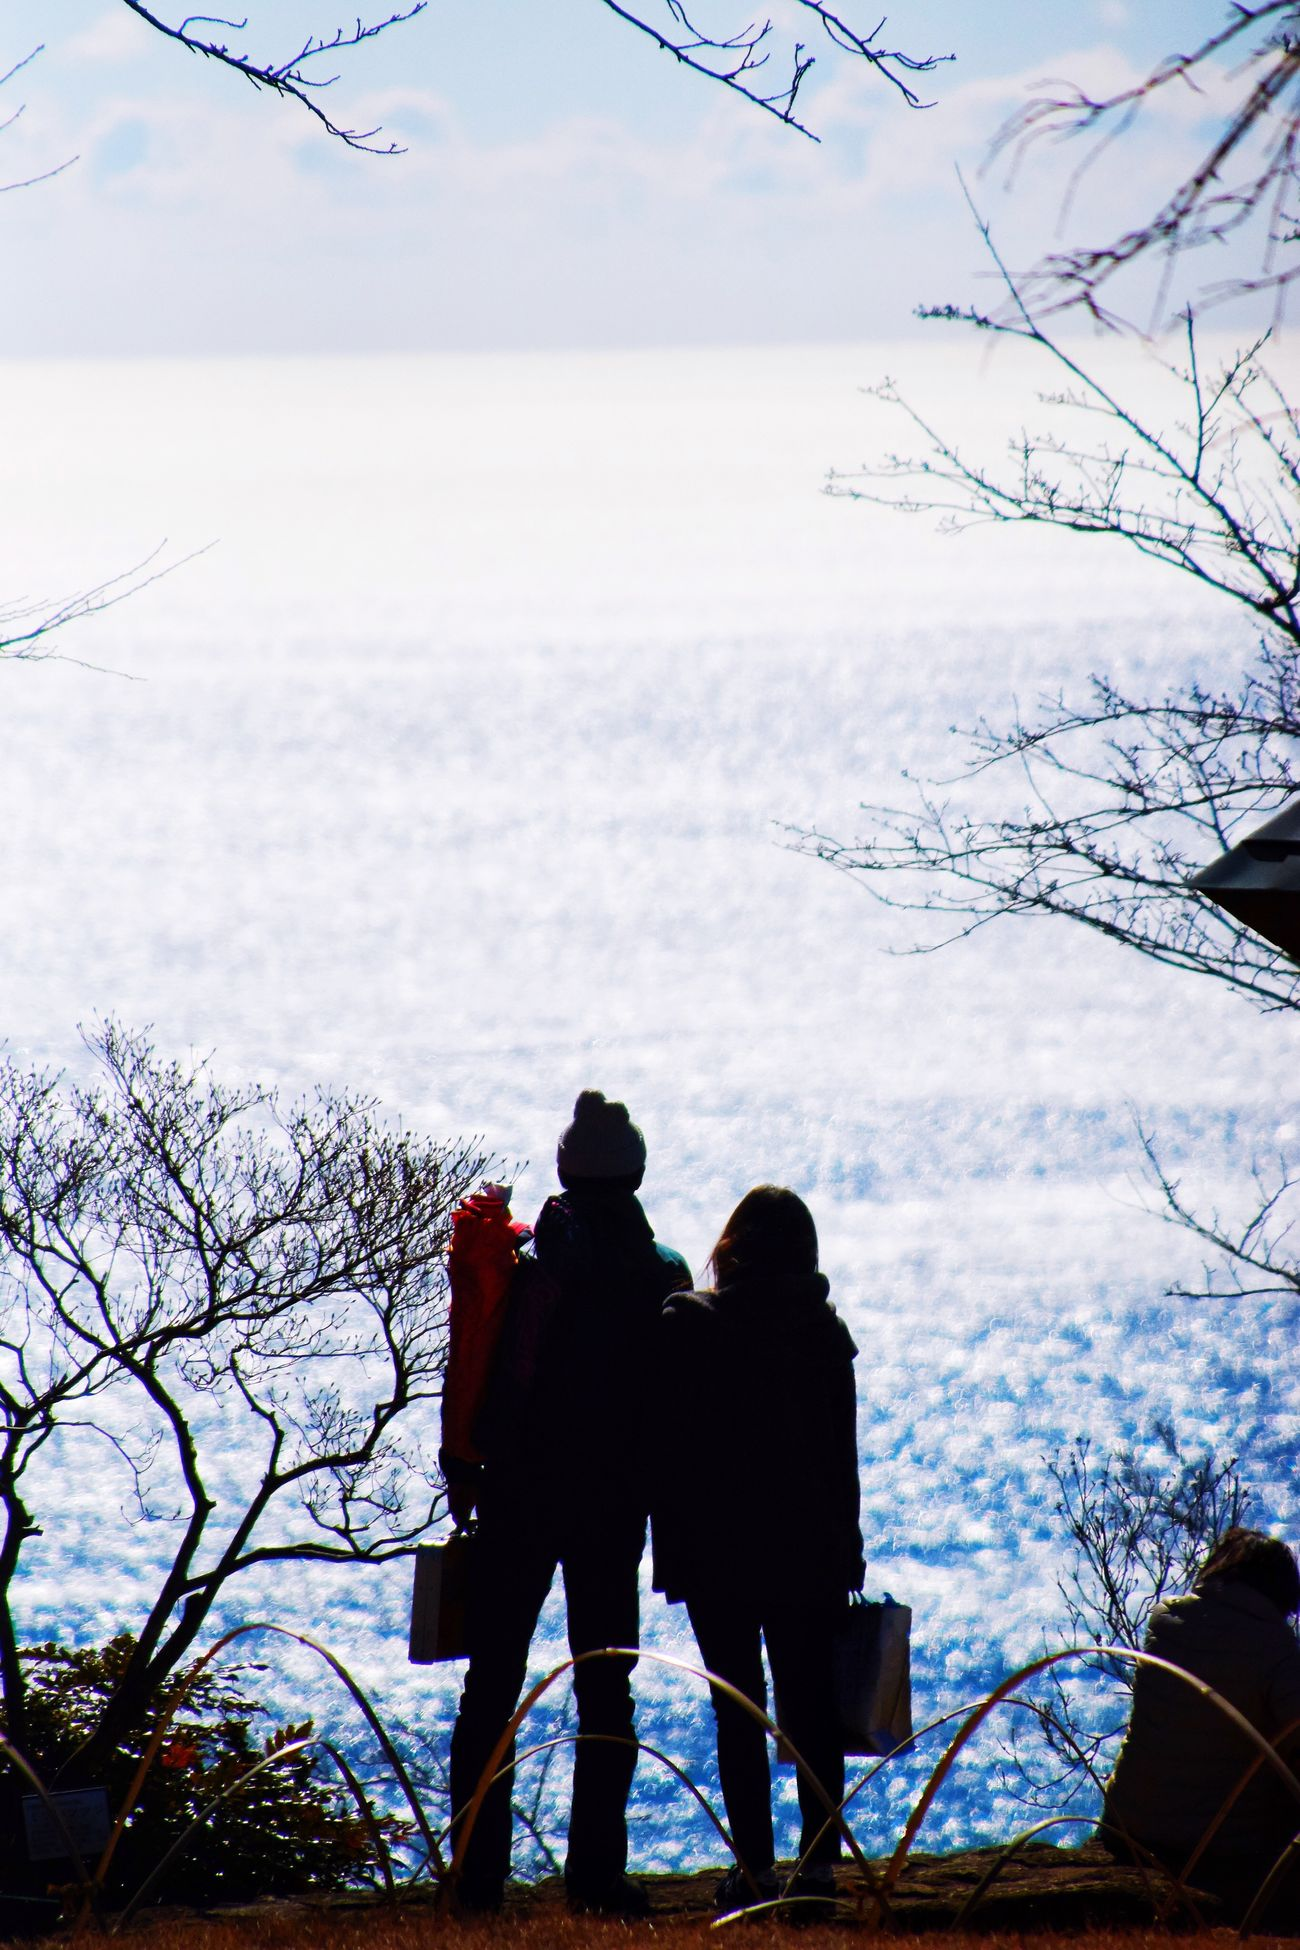 Two People Winter Cold Temperature Snow Sky Nature Real People Weather Tree Togetherness Beauty In Nature Lifestyles Rear View Leisure Activity Bare Tree Warm Clothing Bonding Outdoors Scenics Day Silhouette EyeEm Best Shots Eye4photography  Sea EyeEm Gallery